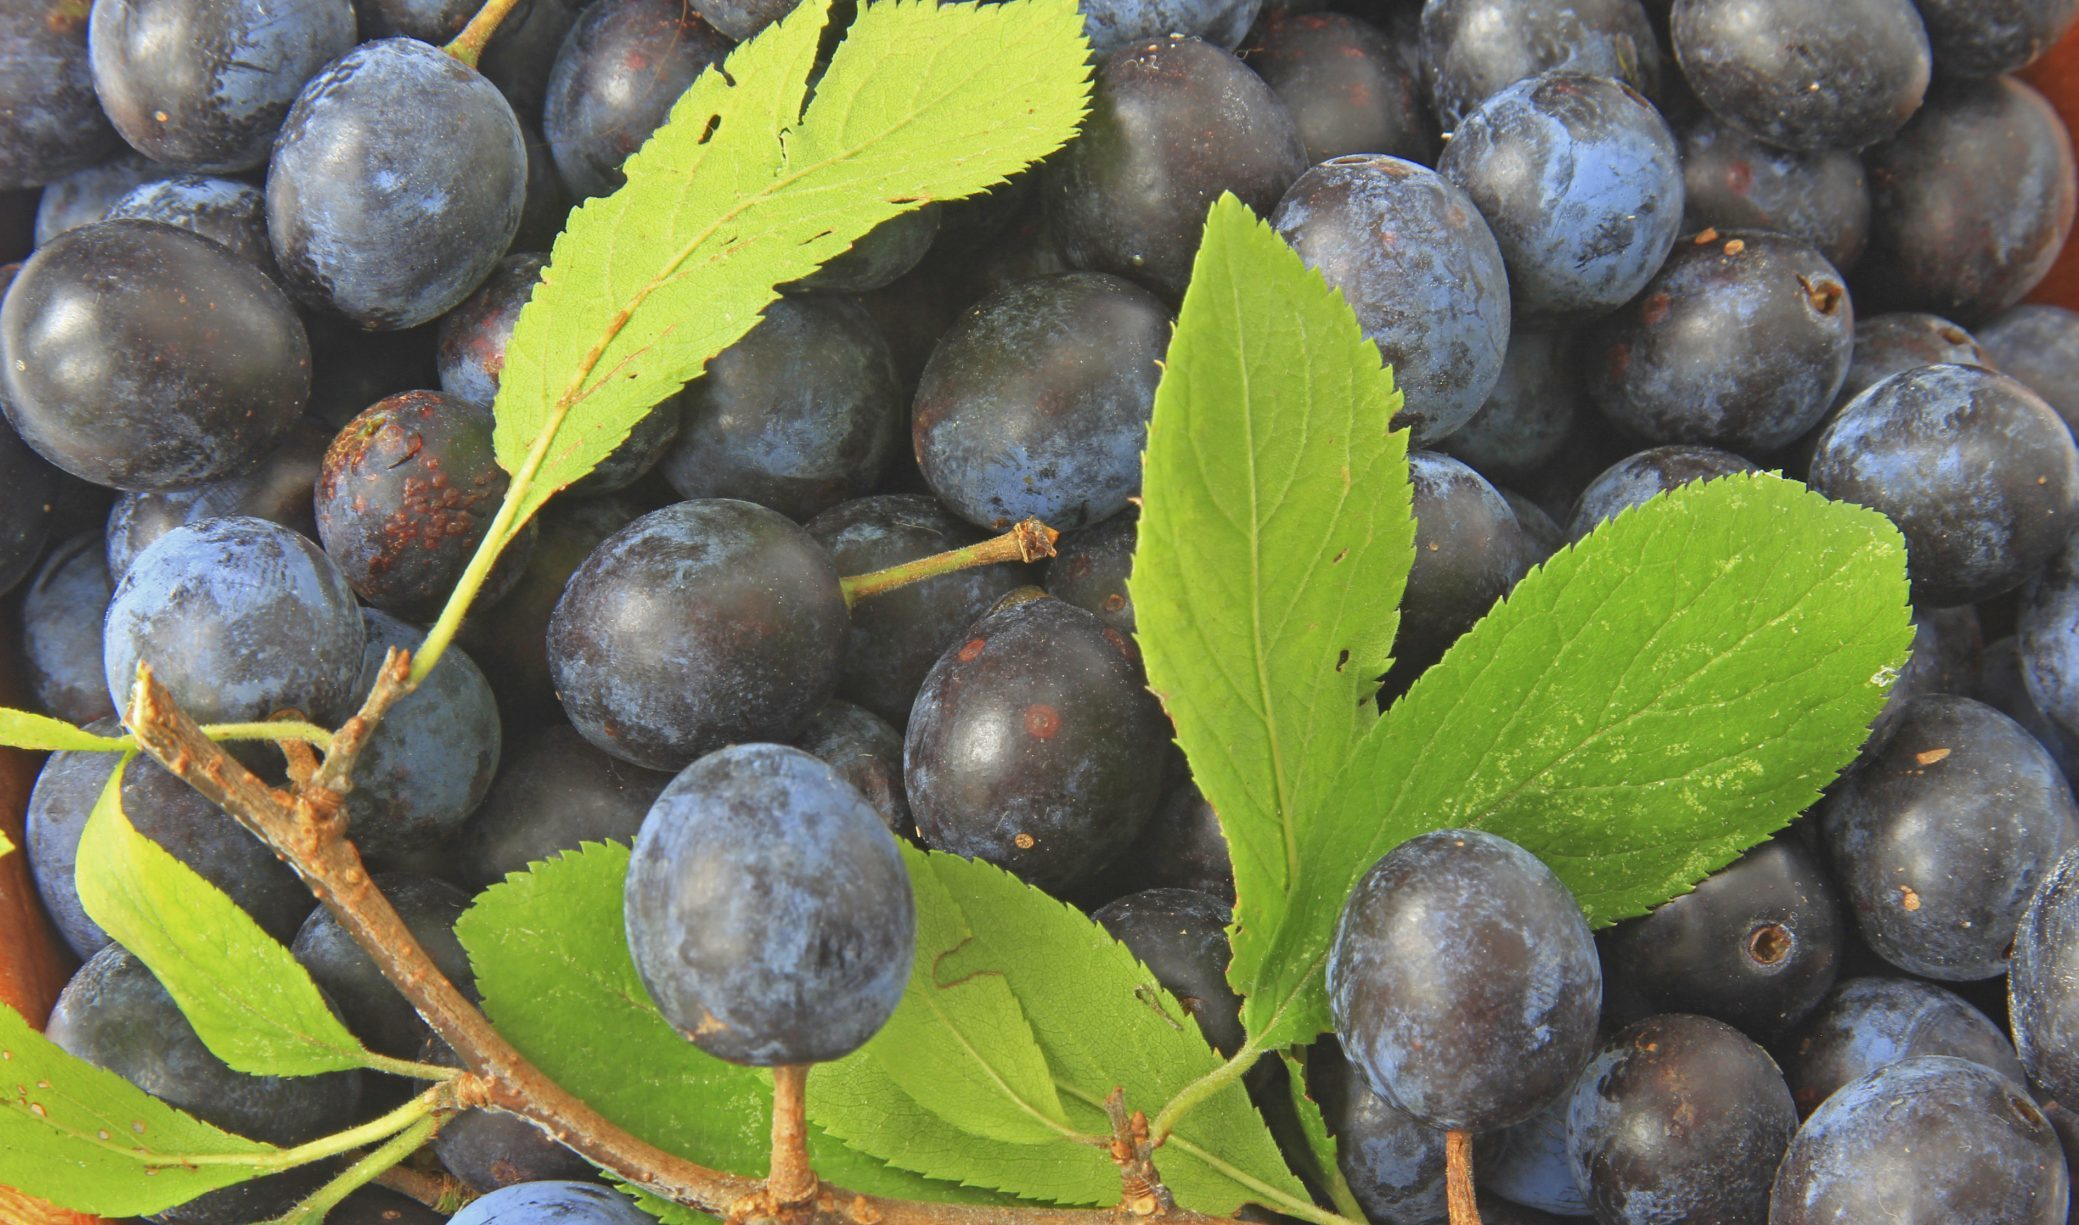 Sloes like these are vital for sloe gin production